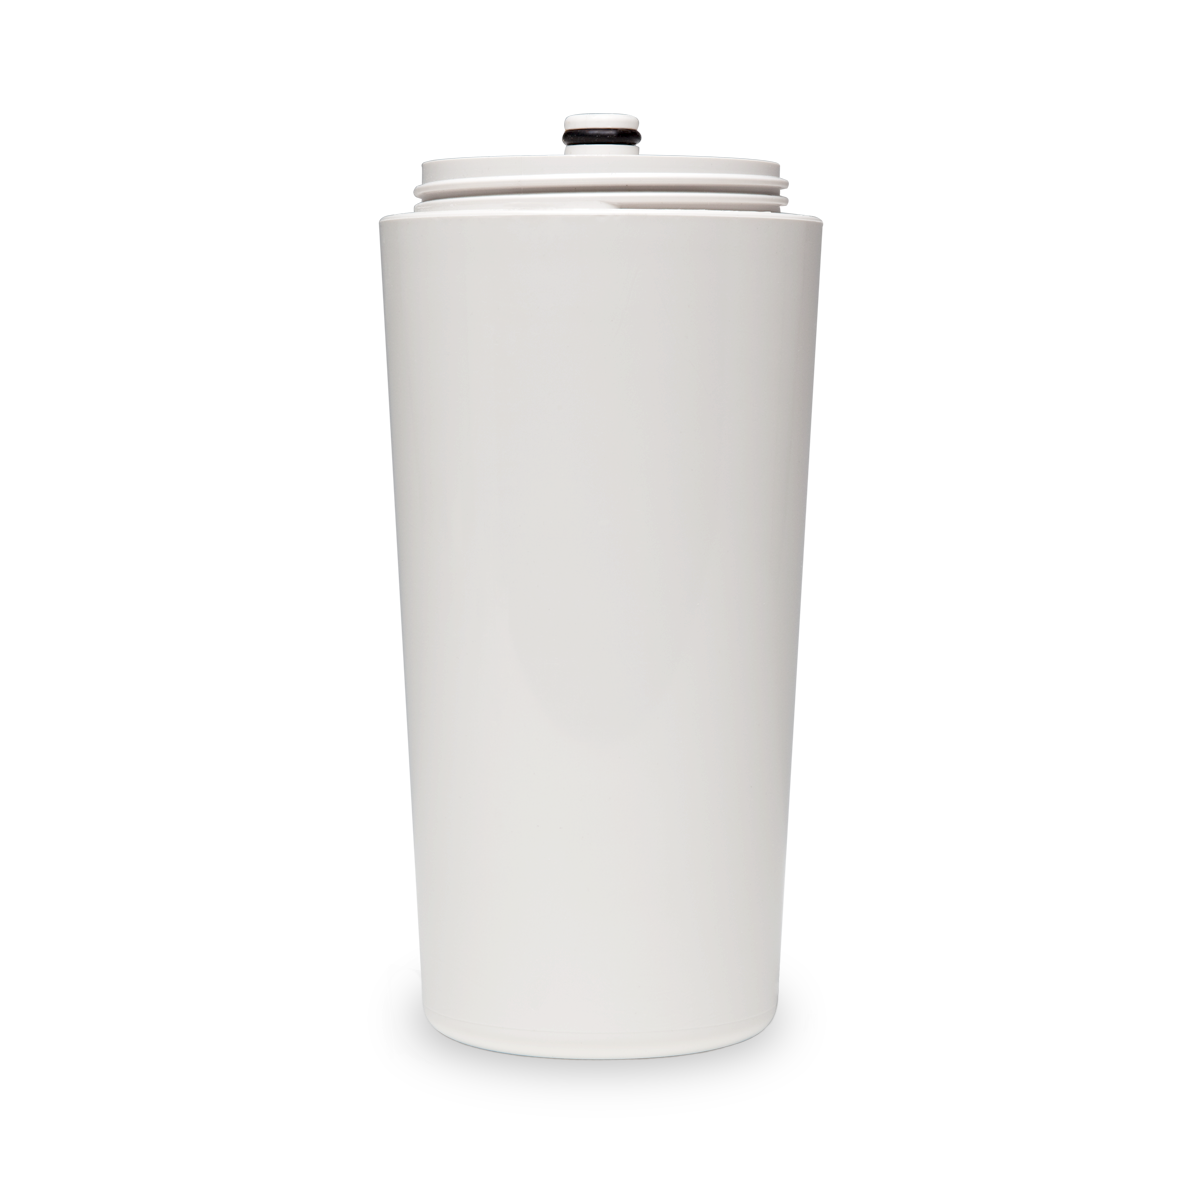 Image of Replacement Water Filter For Shower Water Filters